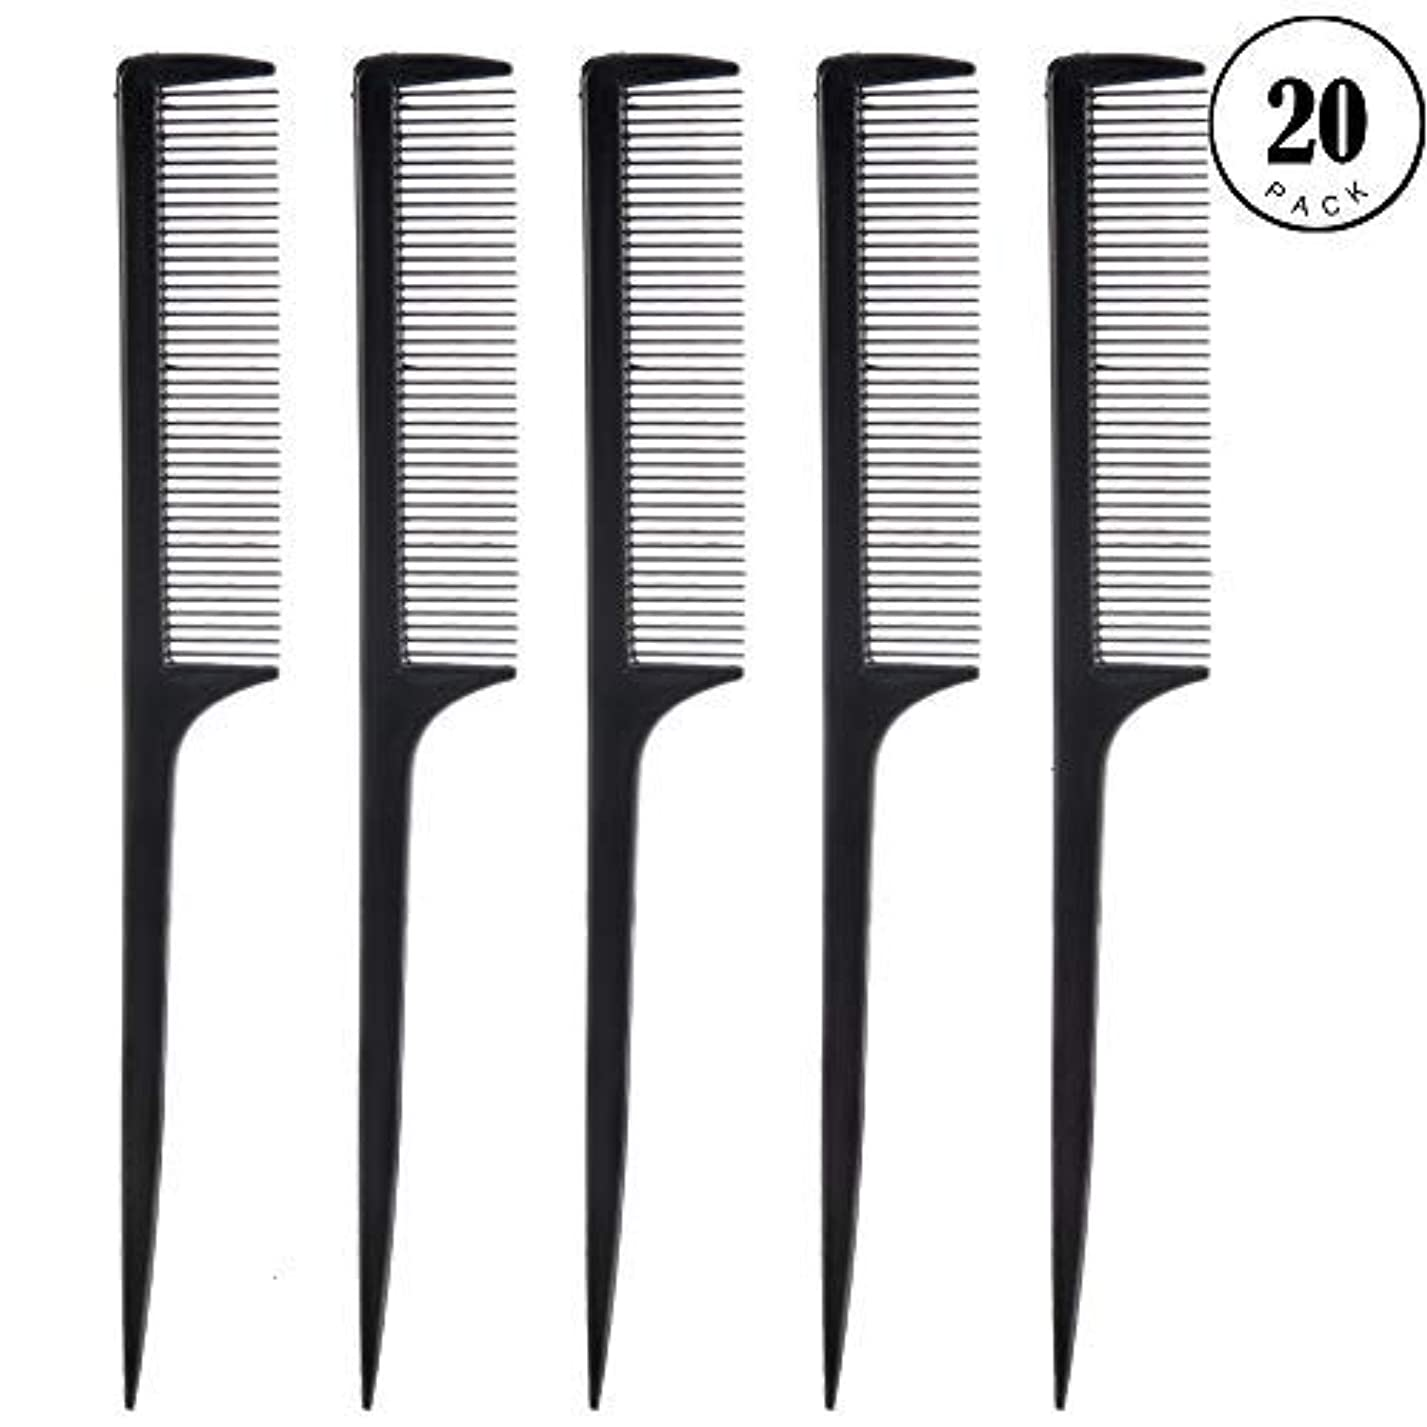 流星十分な学習者Feeko Comb, 20 Pieces 21CM Plastic Lightweight Rat Tail Comb All Hair Types Black [並行輸入品]